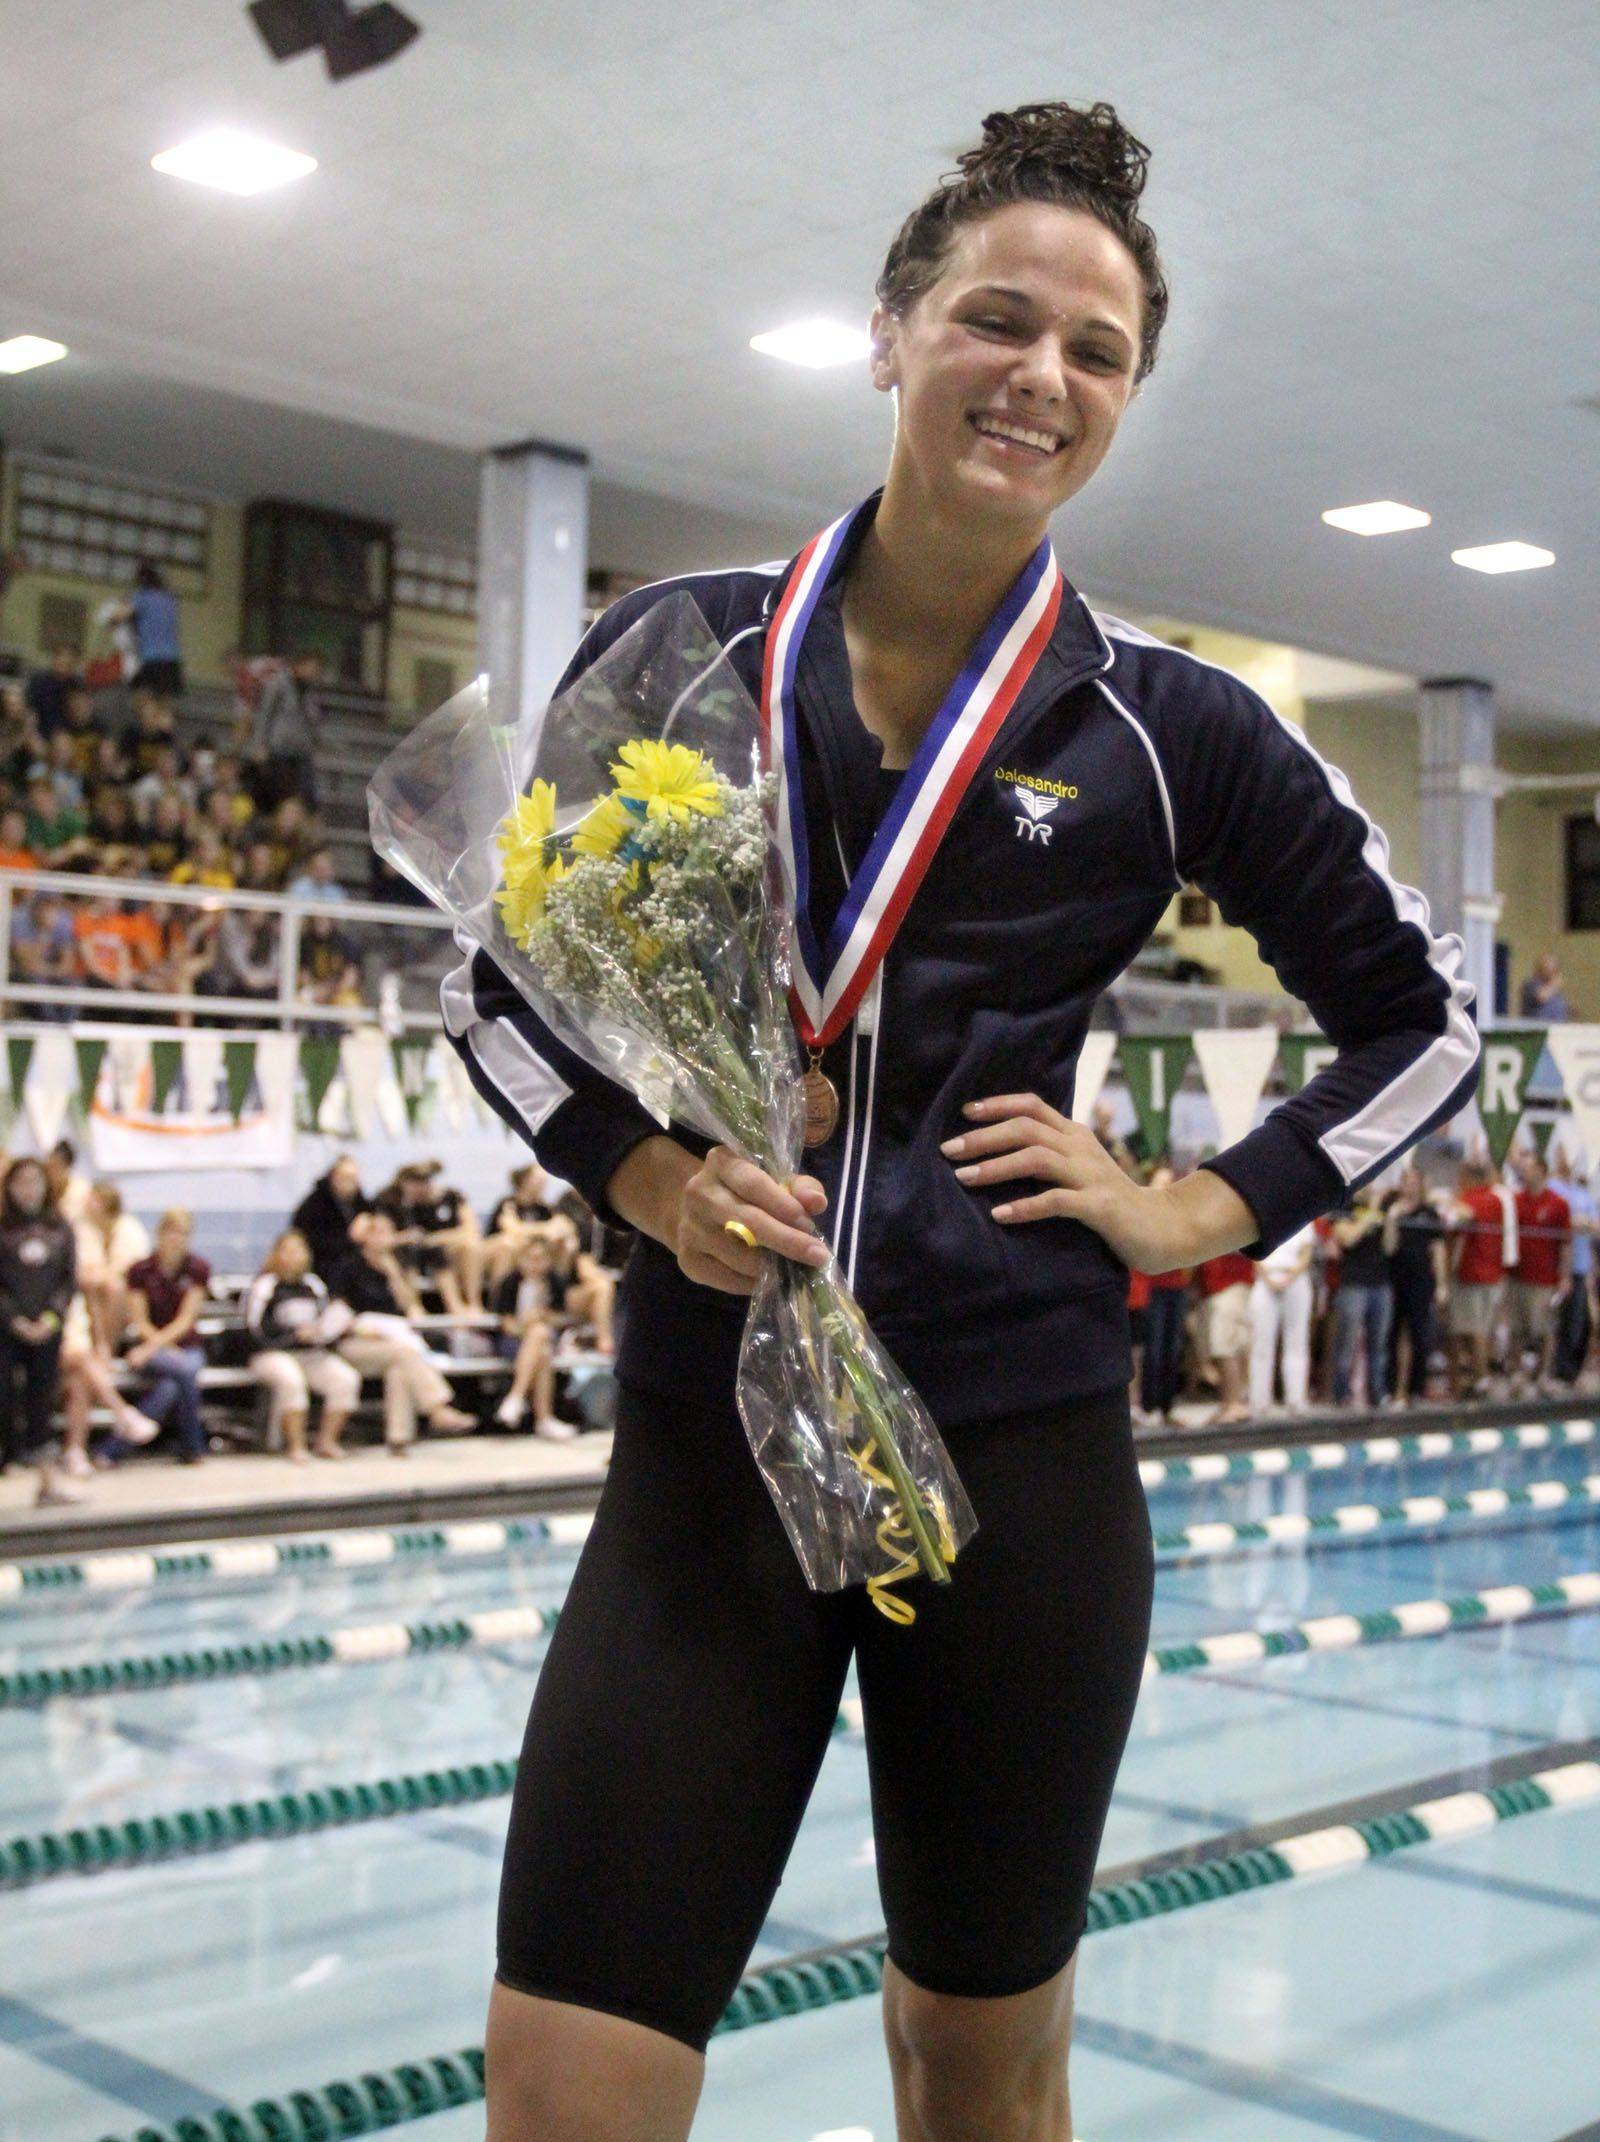 Neuqua Valley's Gia Dalesandro placed fourth in the 100-yard backstroke at IHSA state championships in Winnetka on Saturday, November 19th.